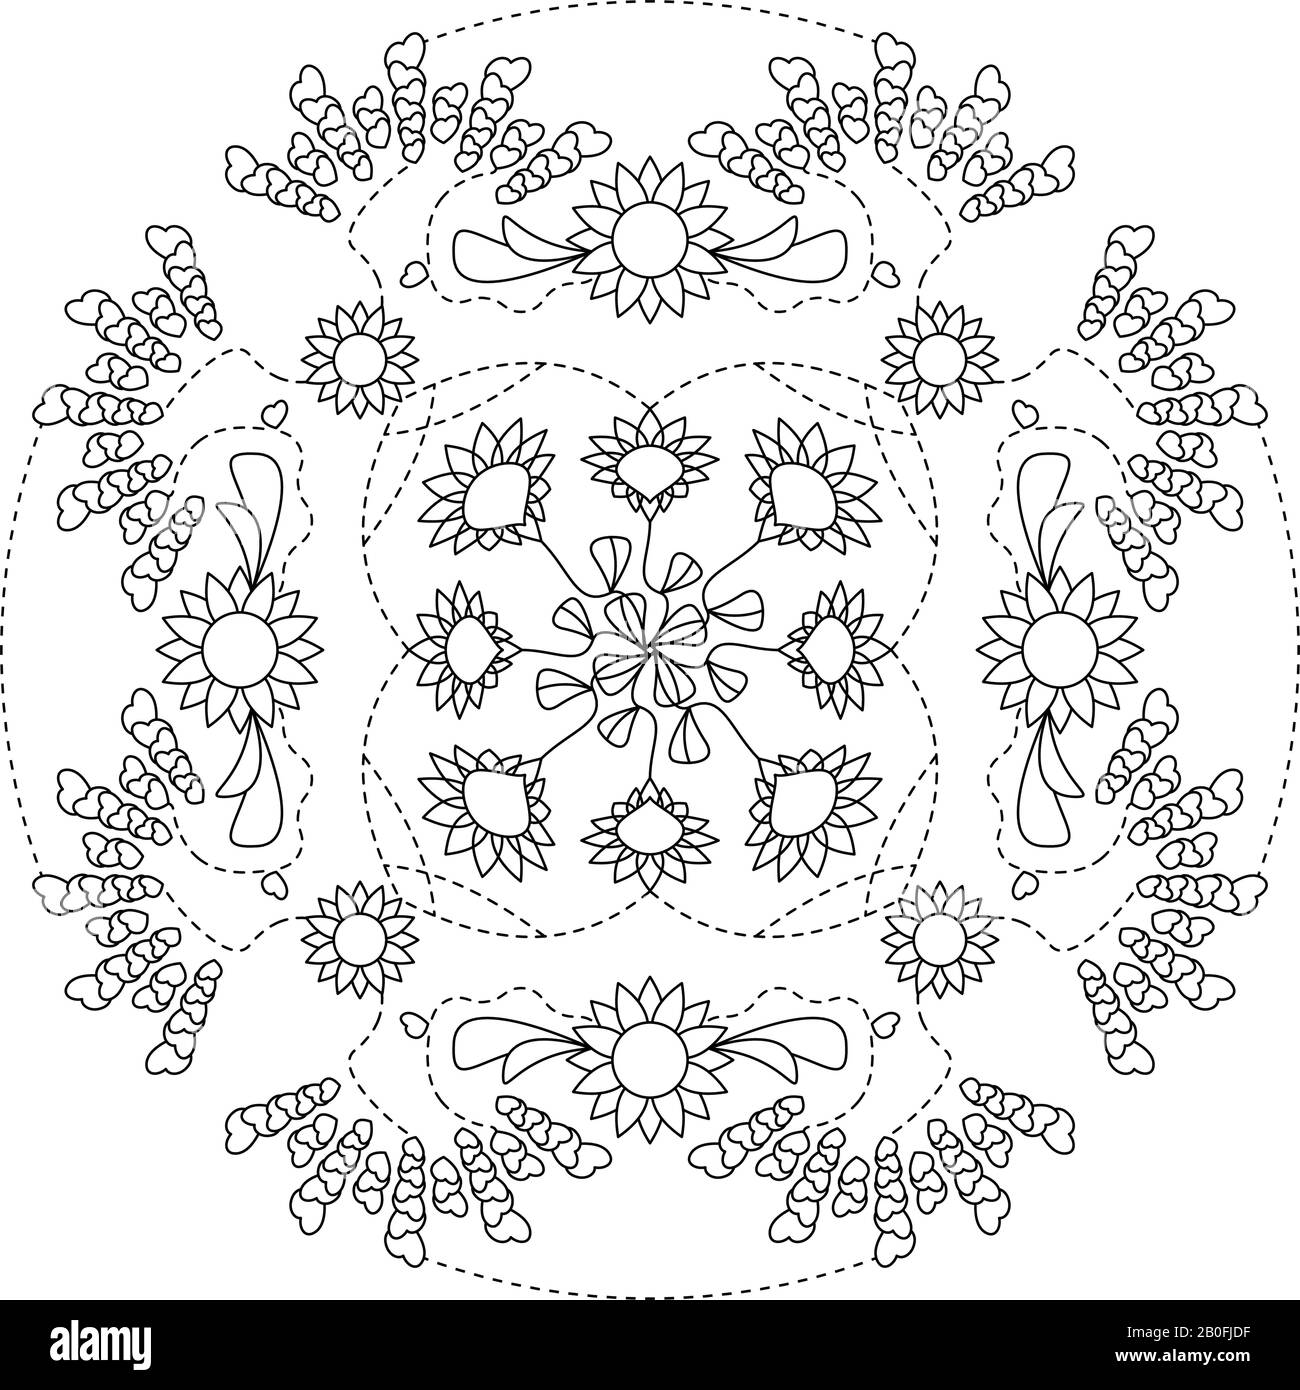 Mandala Coloring Page Art Therapy Illustration Vector Decorative Element Anti Stress Coloring Page Stock Vector Image Art Alamy